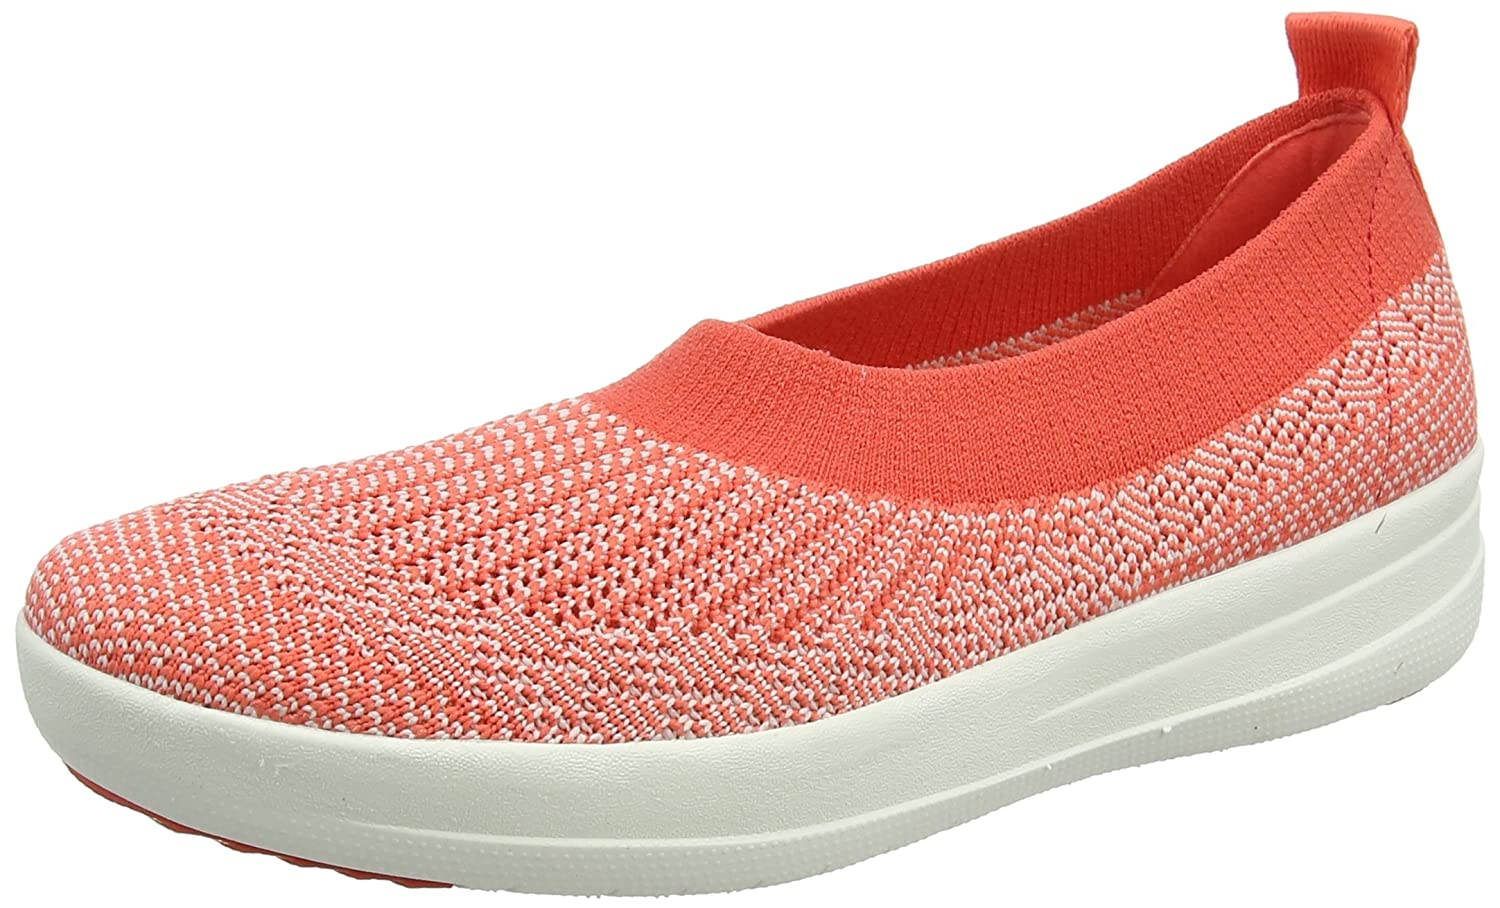 Fitflop H95 Women's Uberknit? Slip-On Ballerinas B01LYO0DLN 7 B(M) US|Hot Coral/Neon Blush